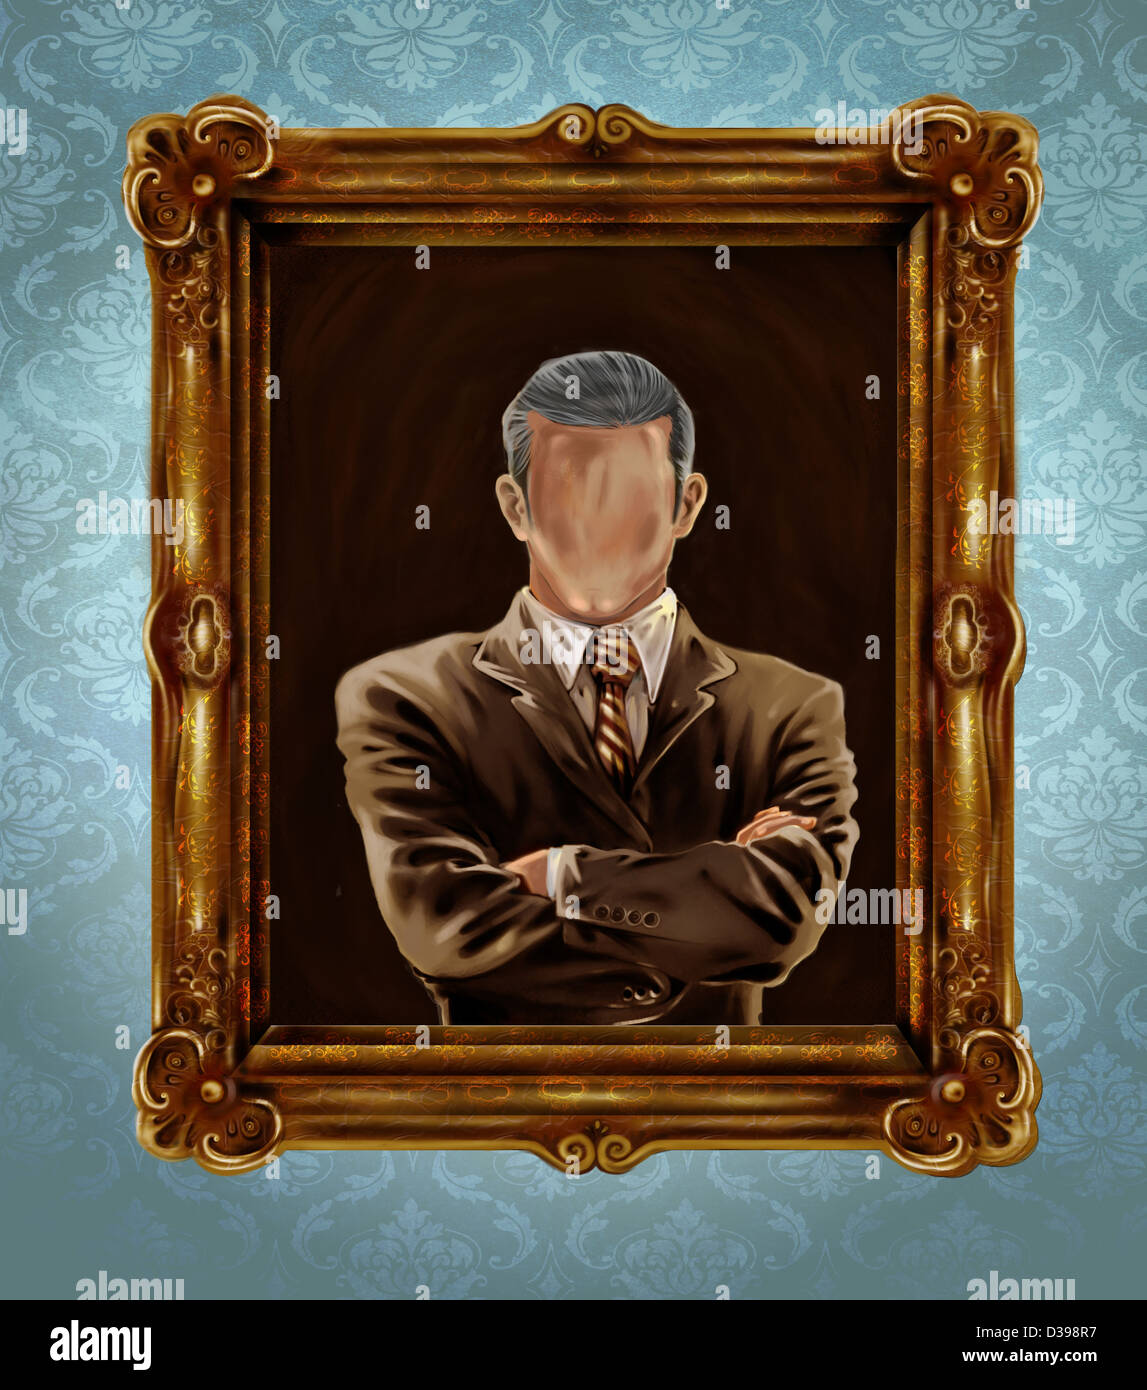 Illustrative image of picture frame with faded face representing identity crisis - Stock Image